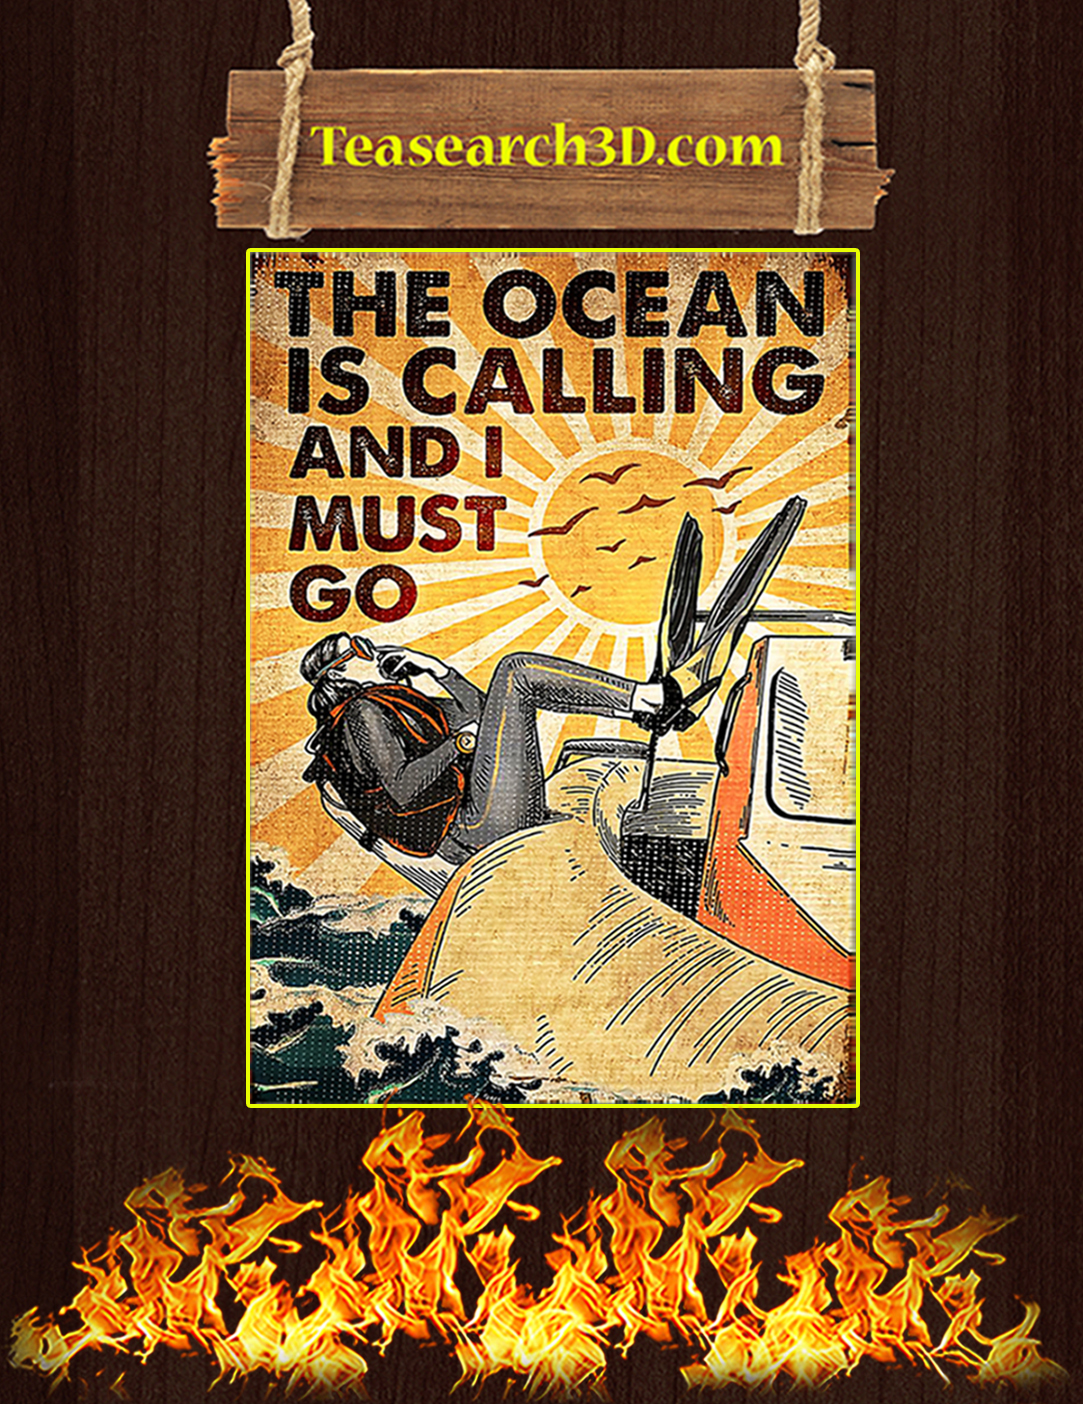 Scuba The ocean is calling and I must go poster A2